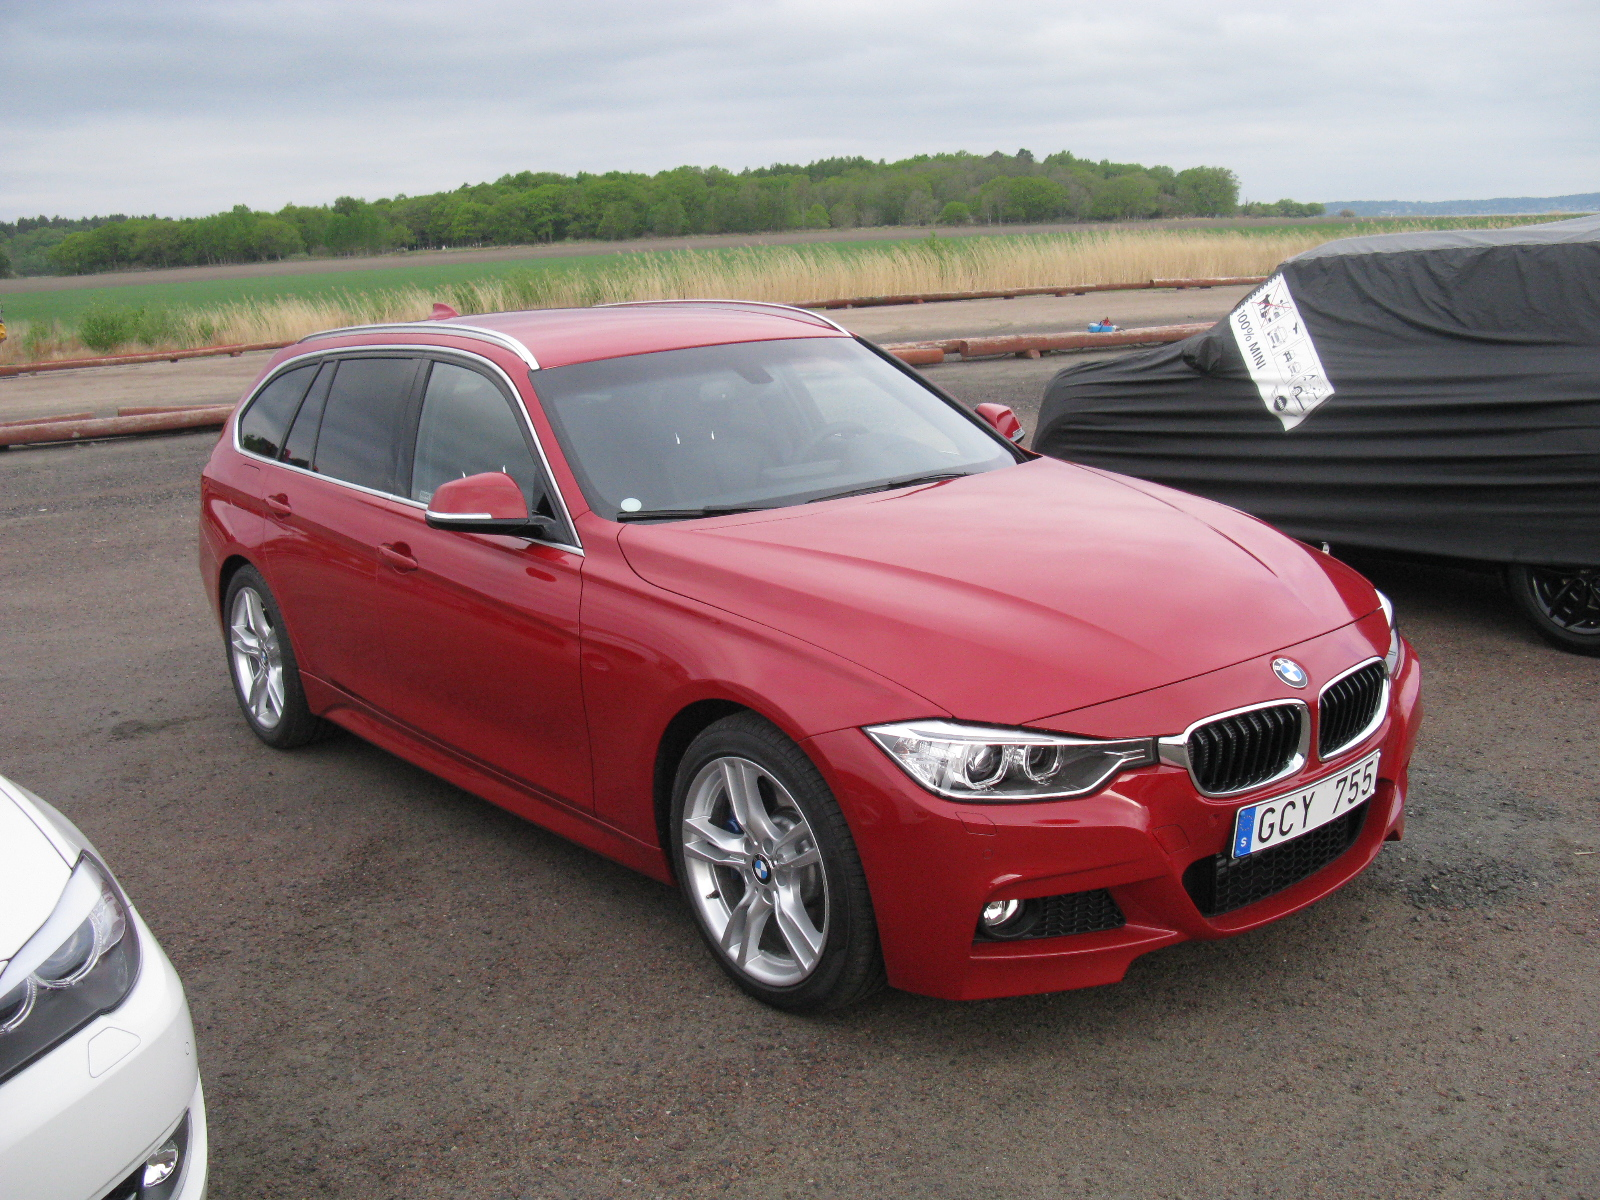 File Bmw 328i Touring M Sport F31 8758621665 Jpg Wikimedia Commons